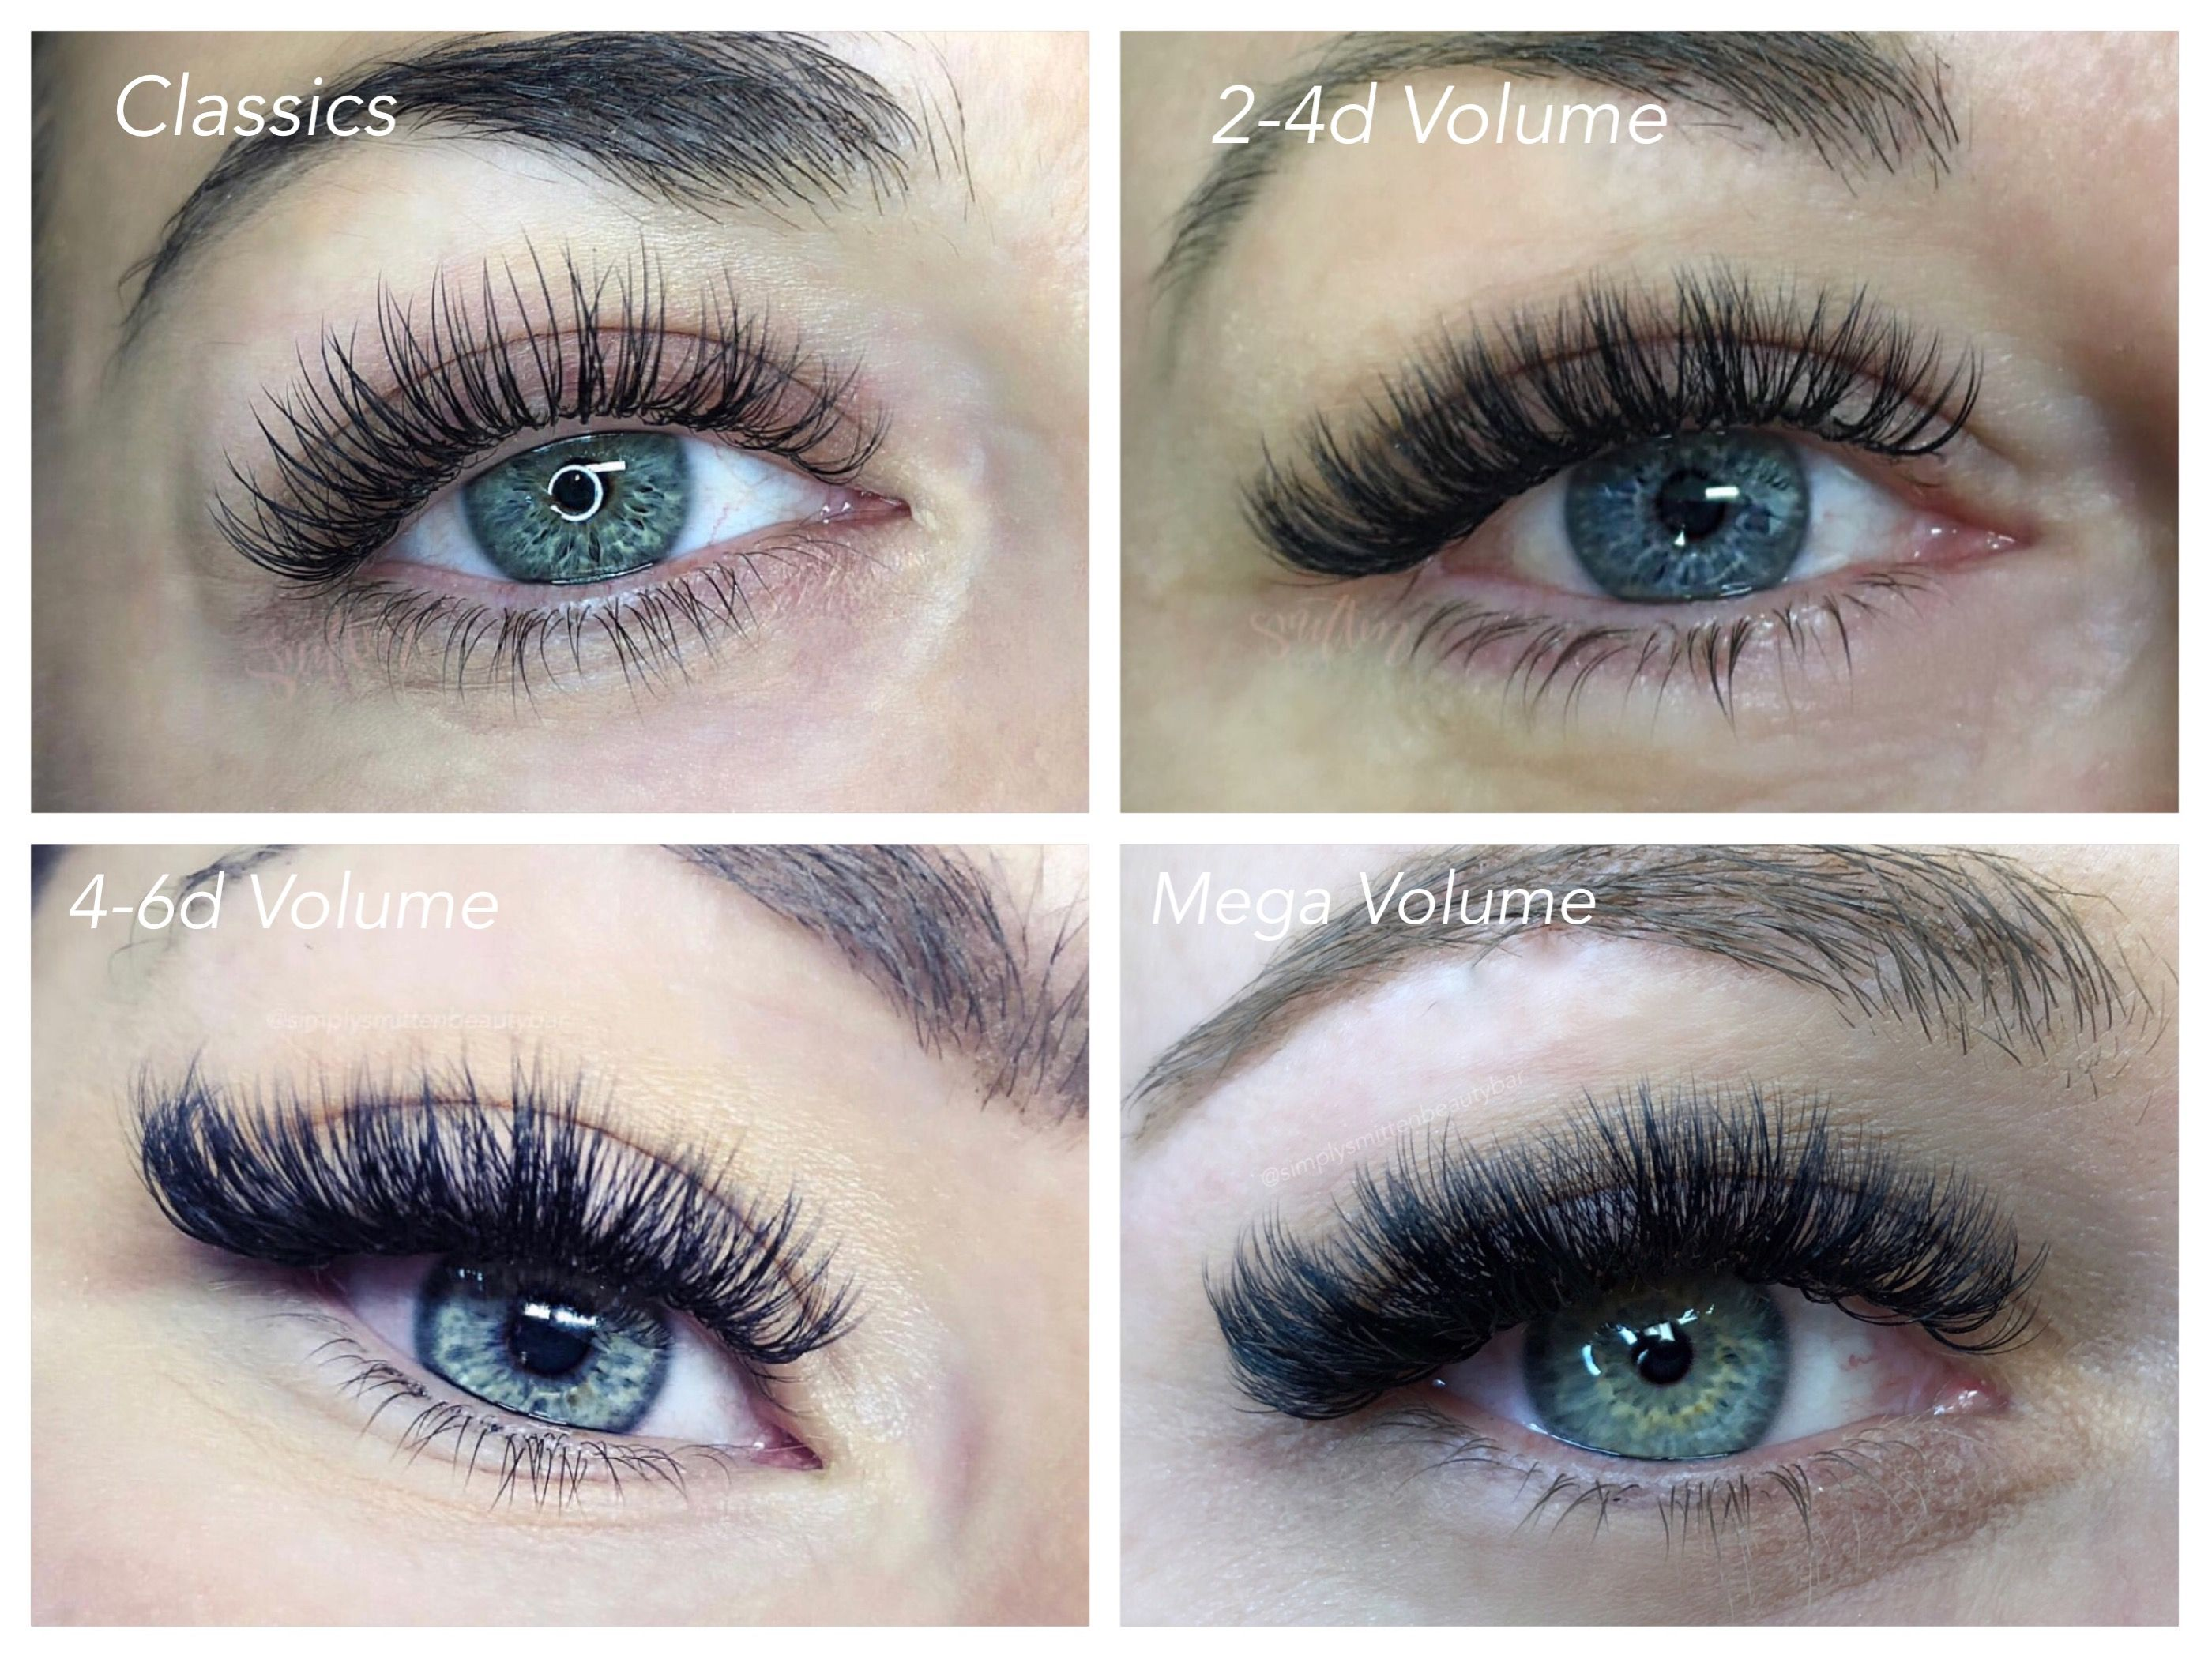 Comparison of the different types of lashes! Classics ...